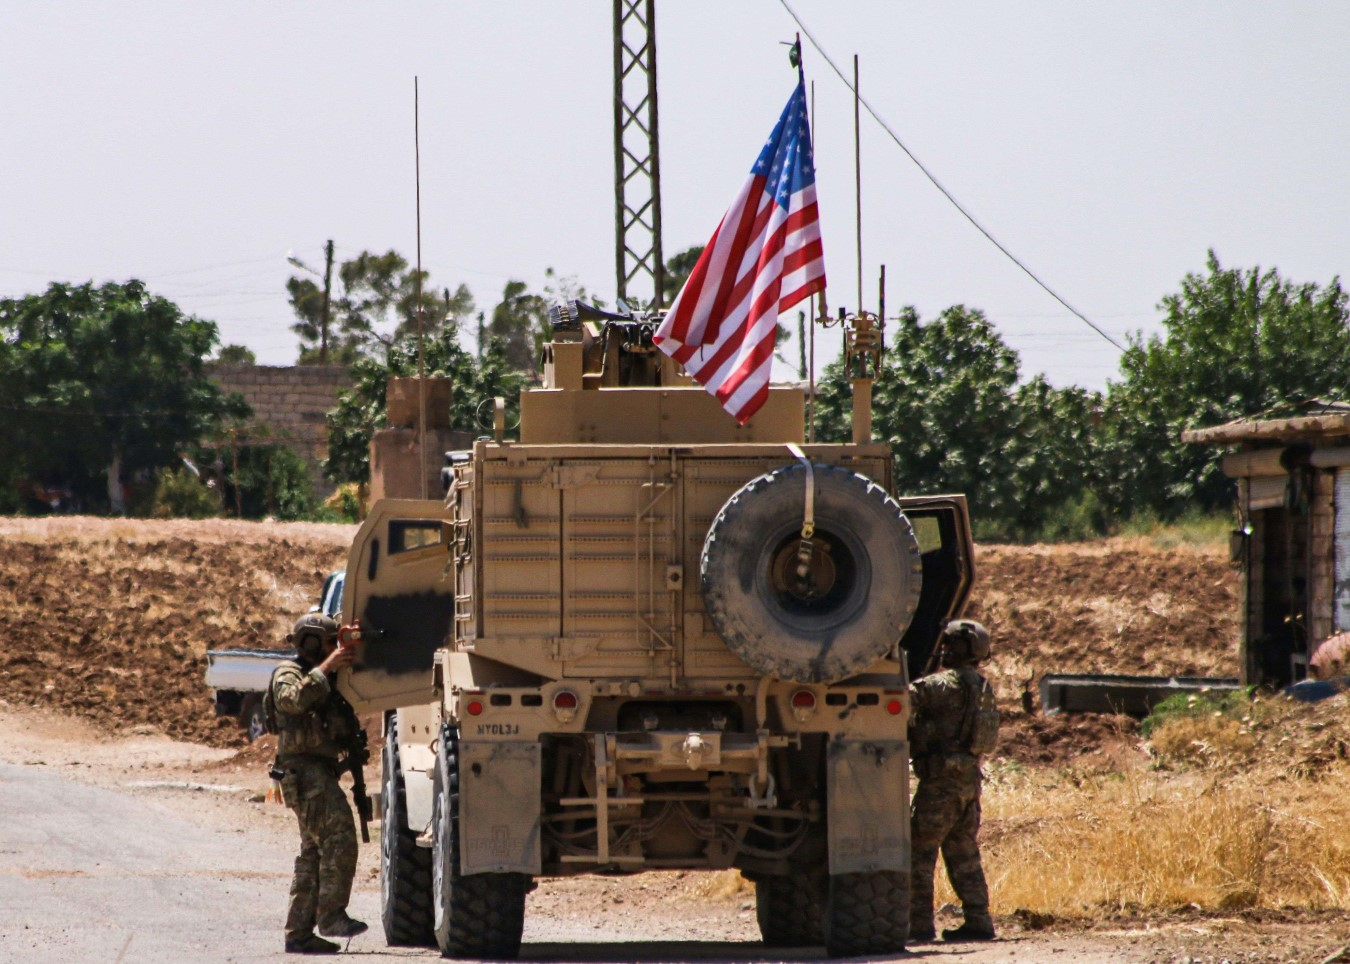 US soldiers climb into a vehicle of the US-led coalition as they prepare to leave the city of Ras al-Ain in Syria's Hasakeh province, July 28. (AFP)